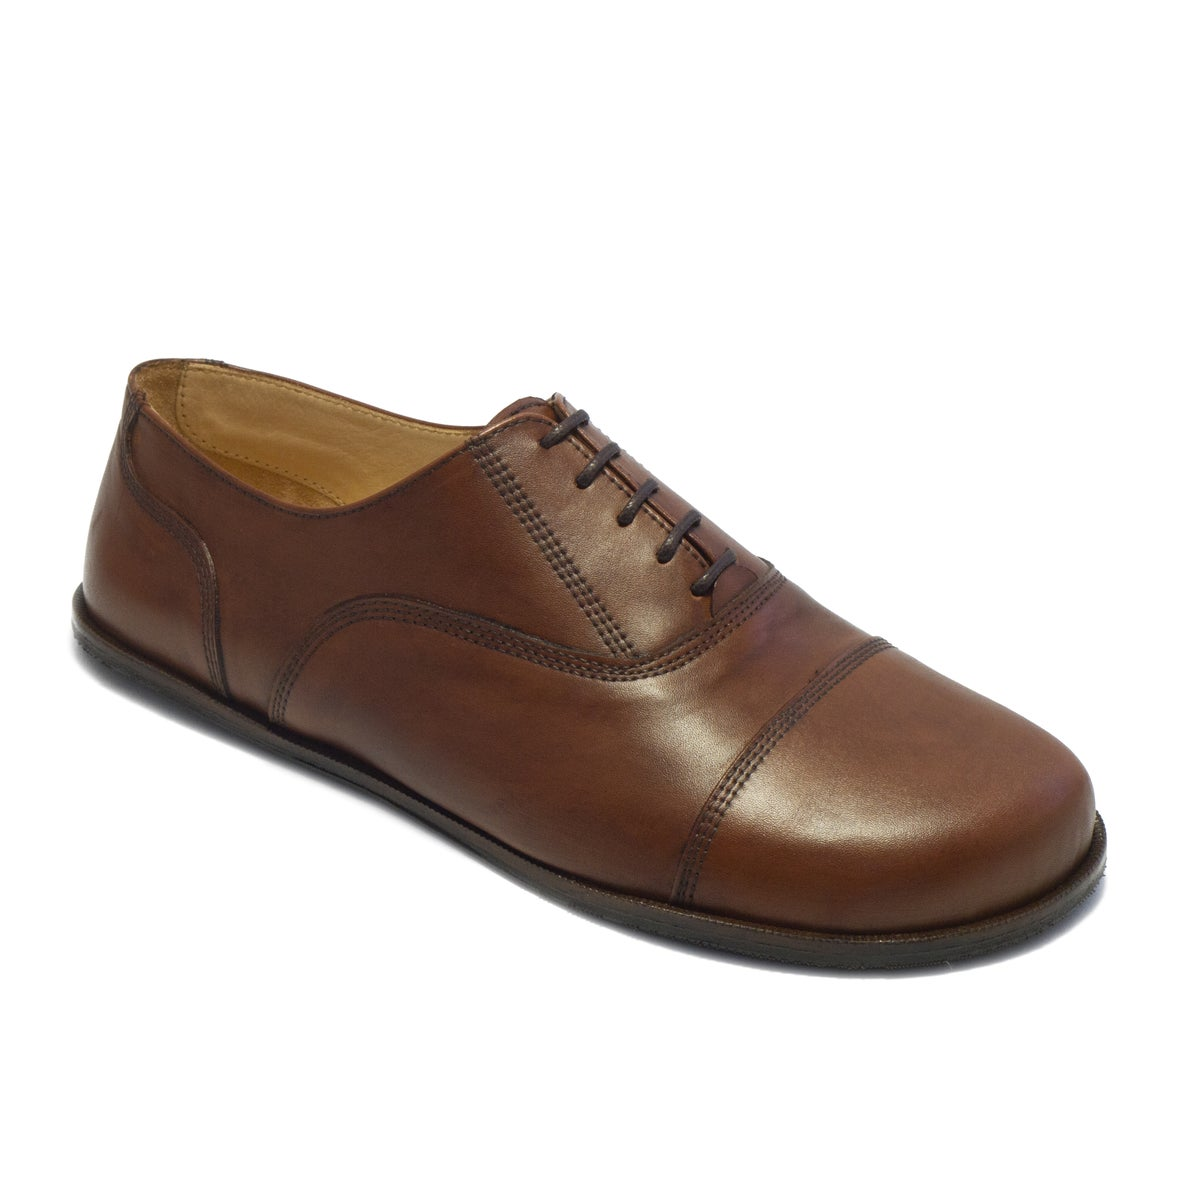 Image of BESPOKE OXFORD SHOES